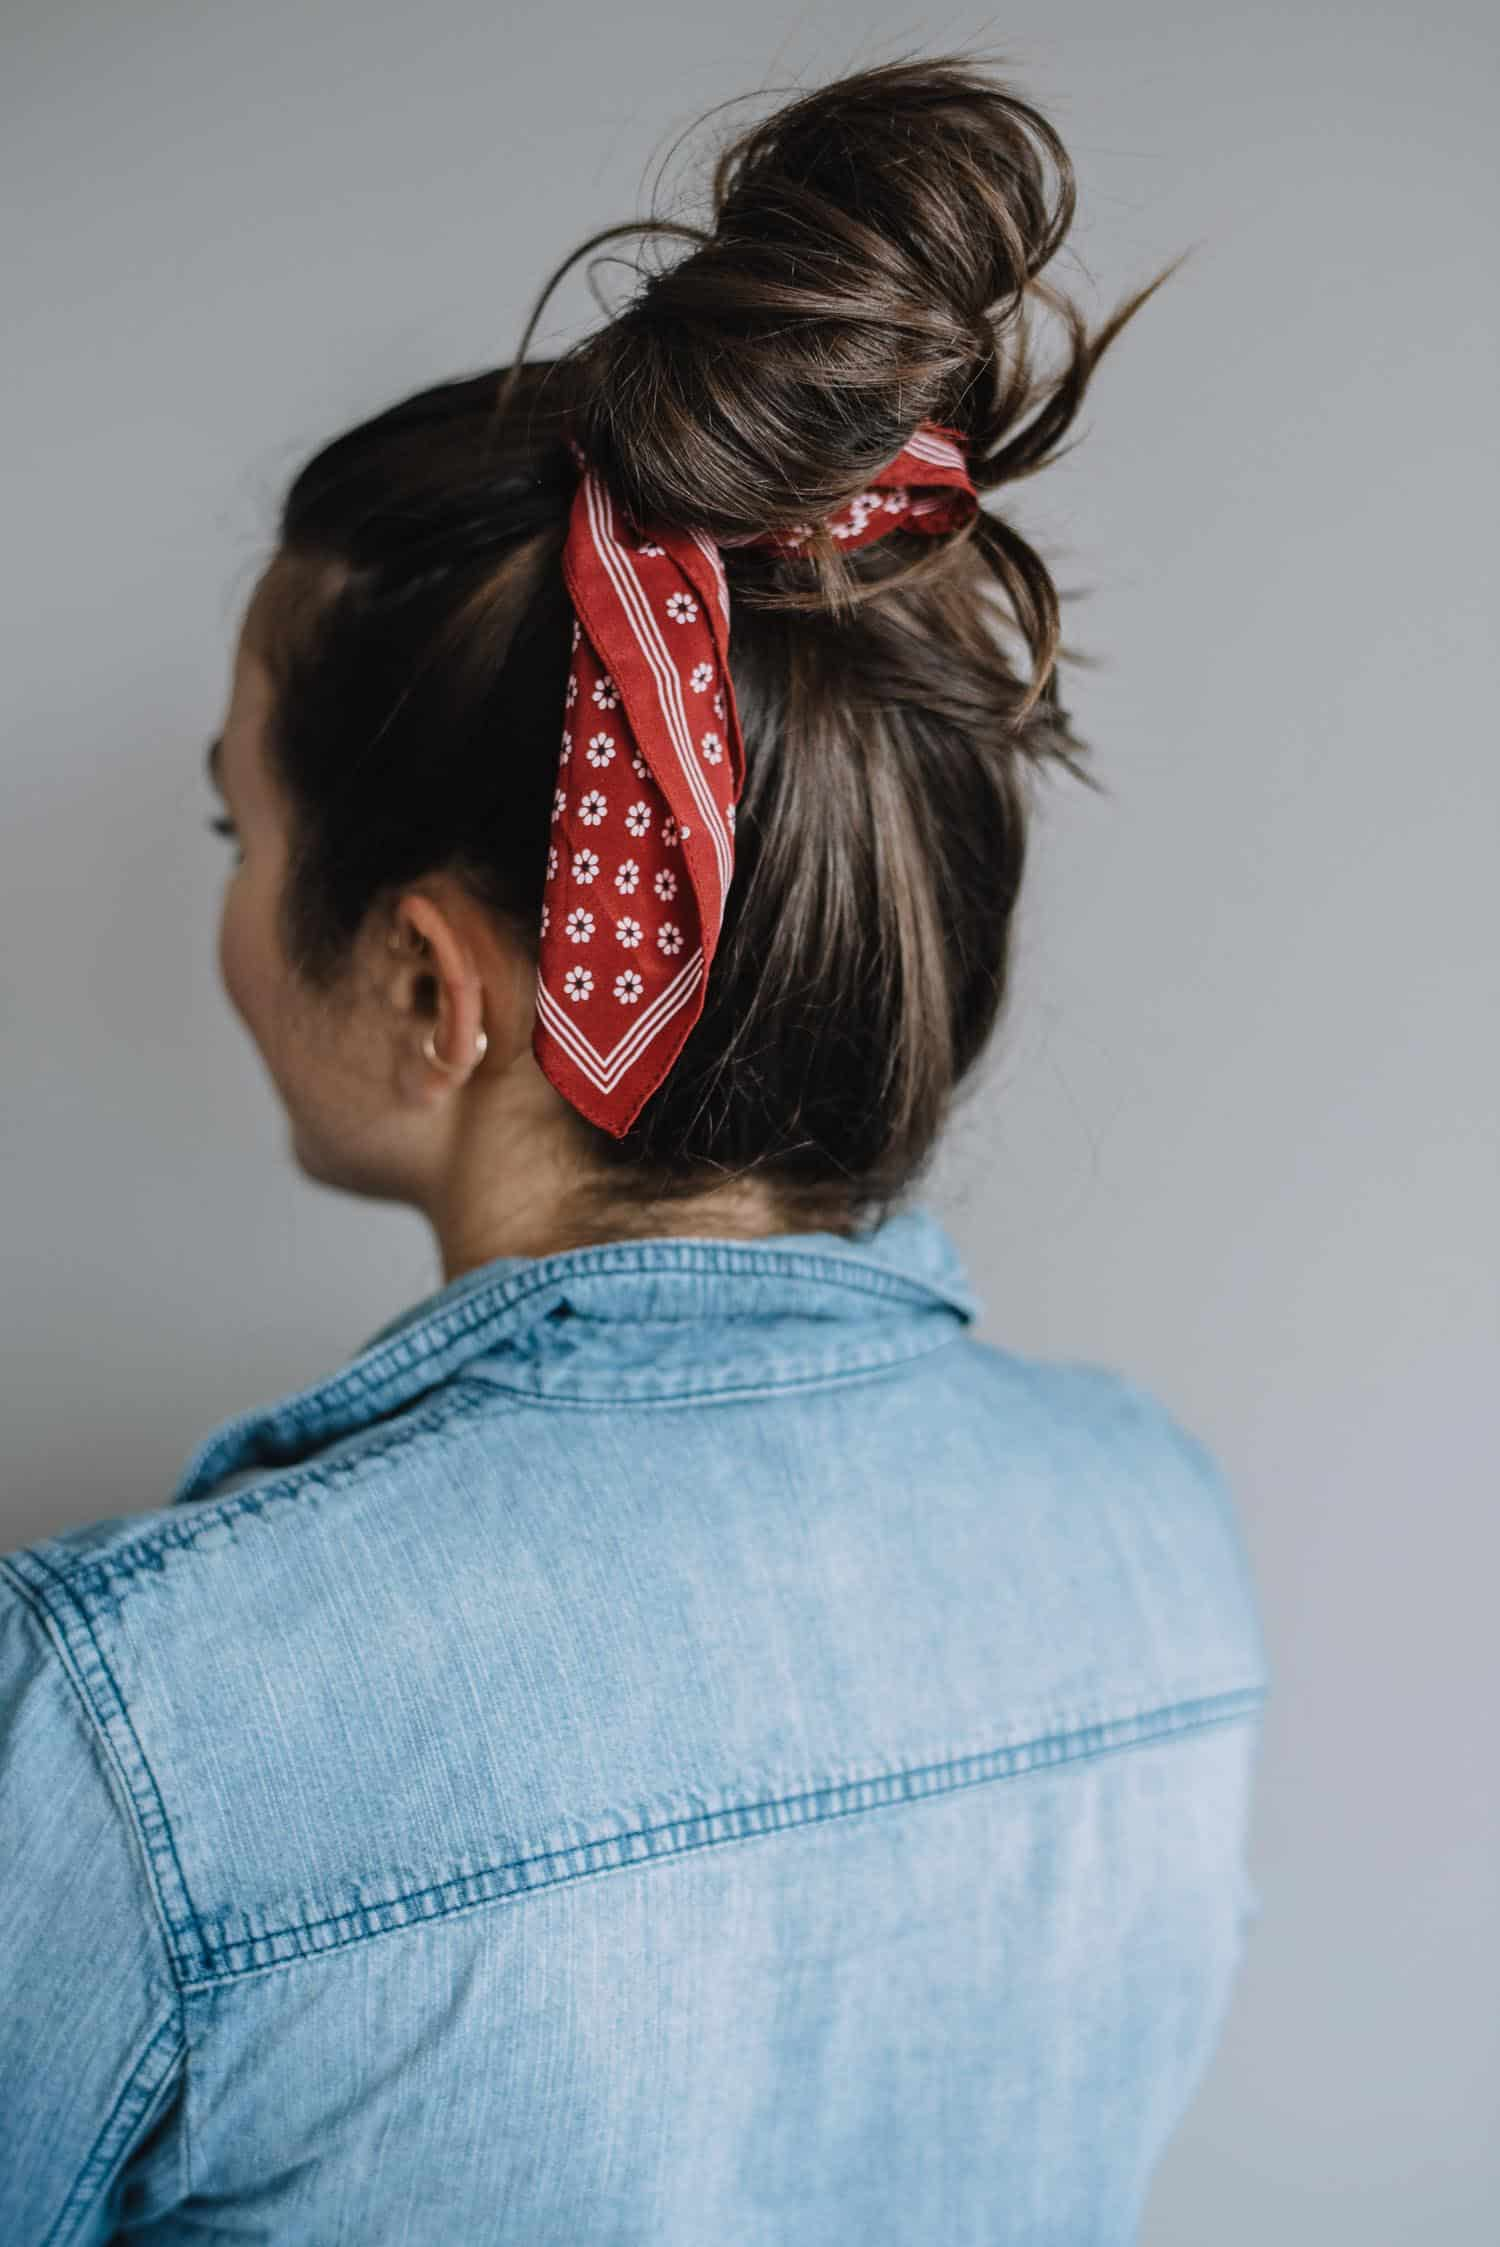 How To Wear A Bandana In Your Hair - The Messy Top Knot